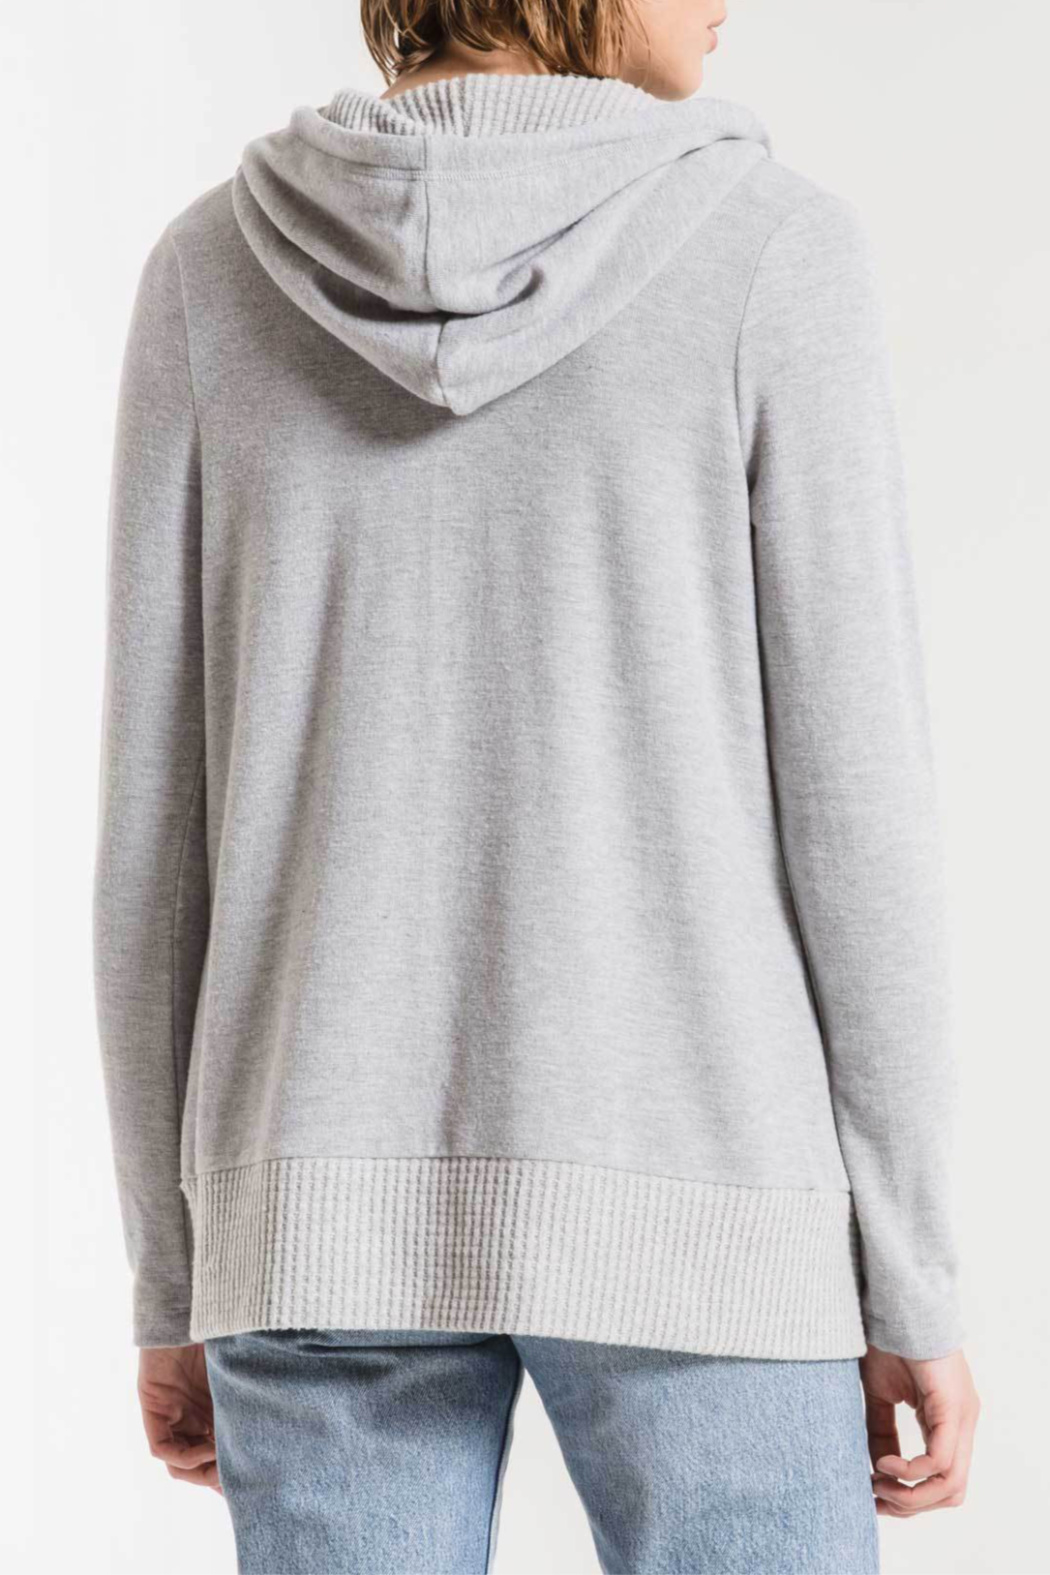 z supply Thermal Lined Soft Spun Cardigan - Side Cropped Image